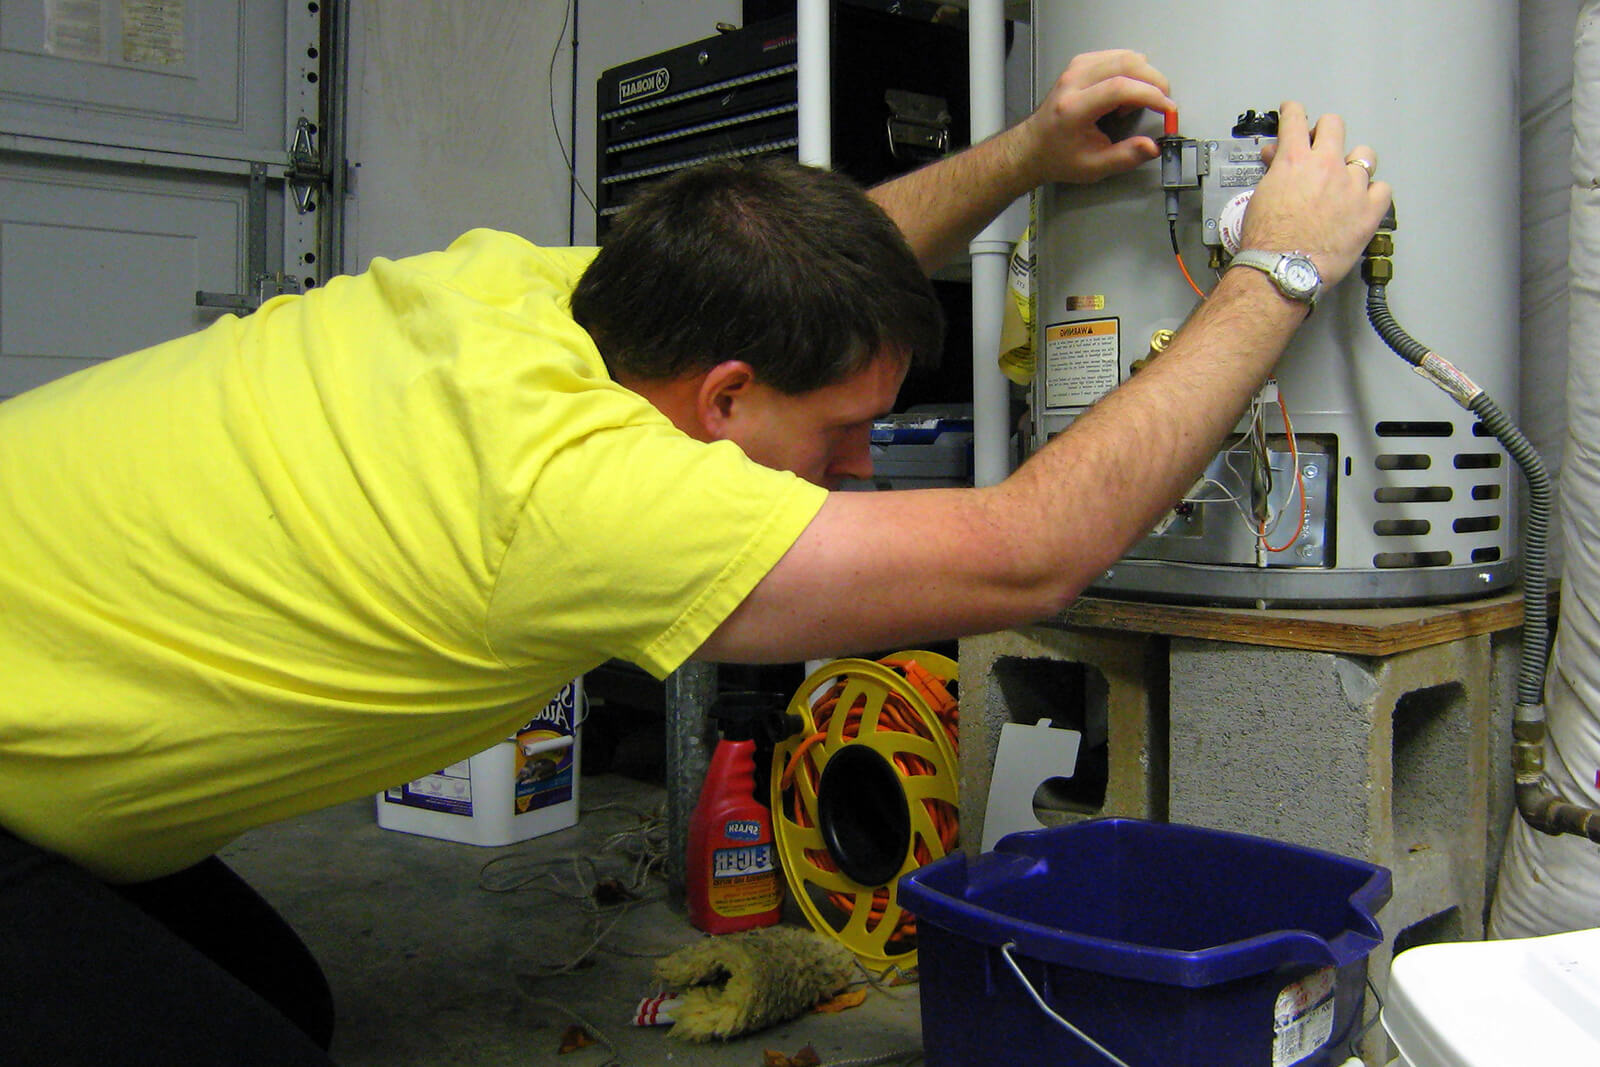 A professional can help with your water heater woes